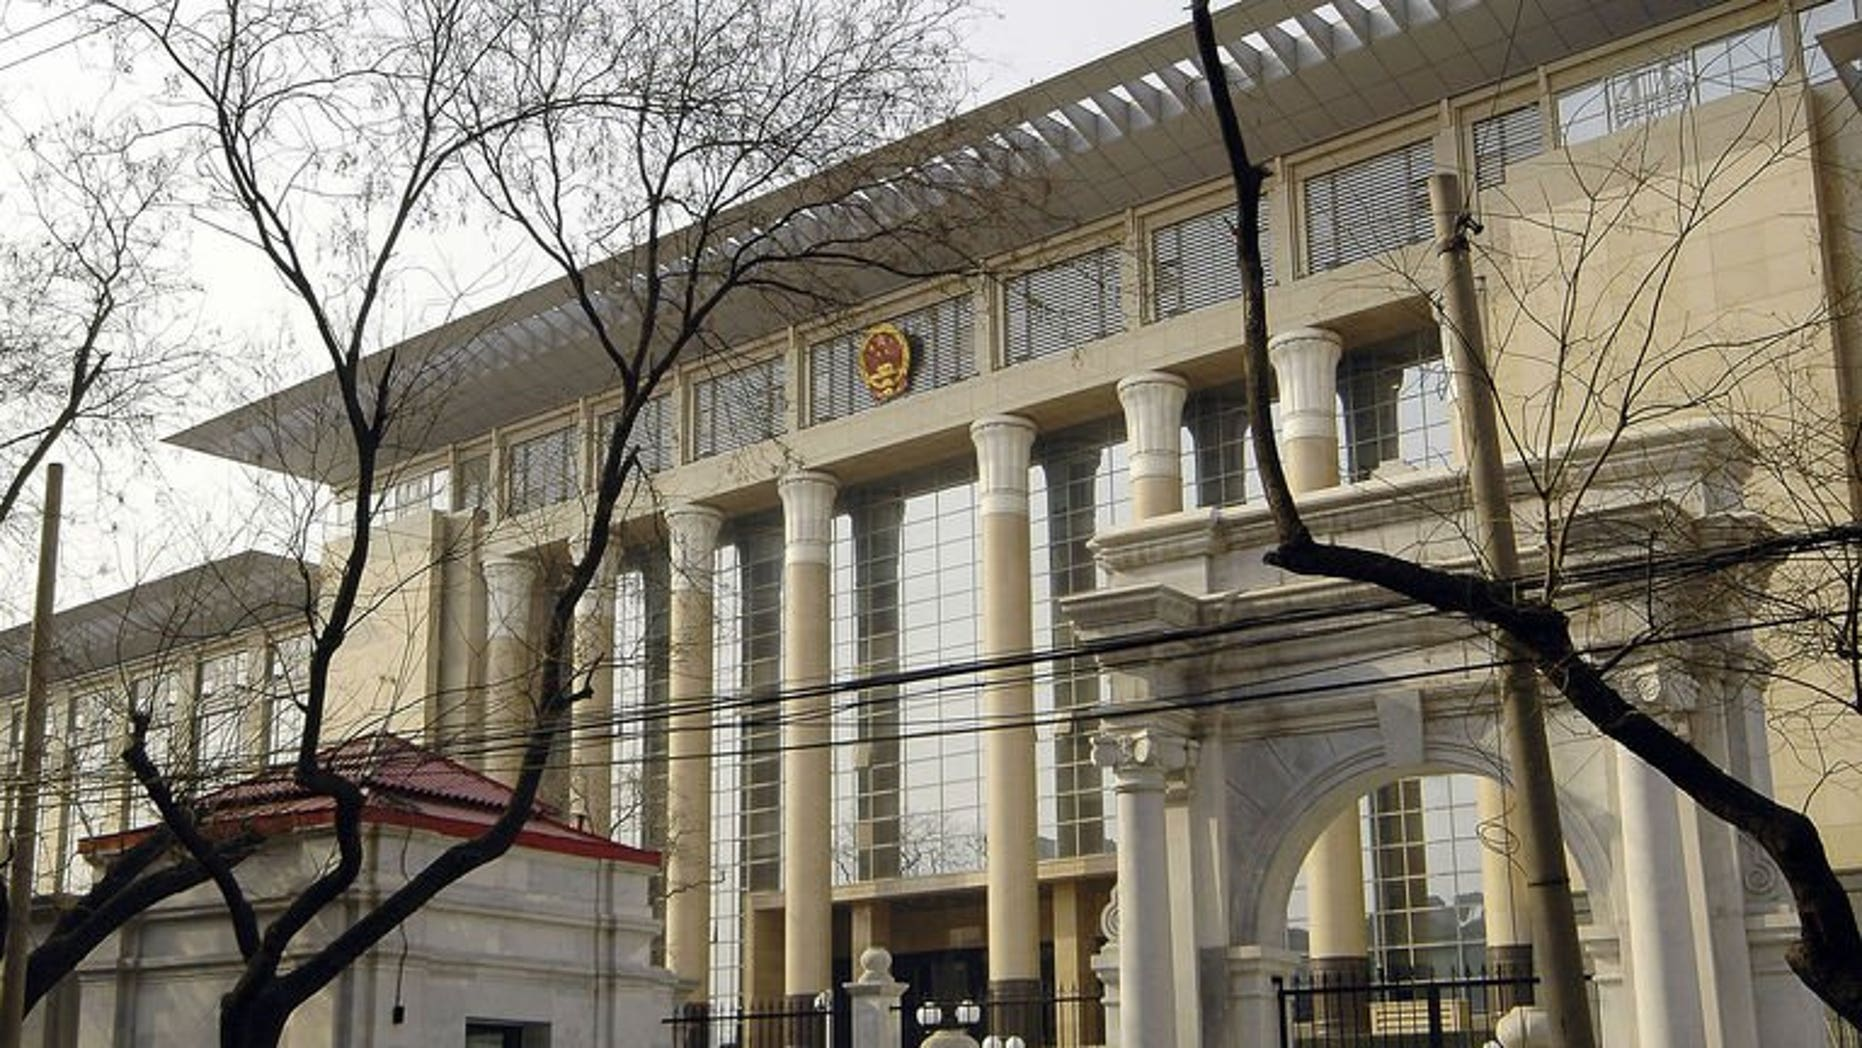 The Chinese Supreme People's Court in Beijing upheld on September 25, 2013, a death sentence against a street food vendor who stabbed two urban security officials following a street dispute, provoking outrage online.